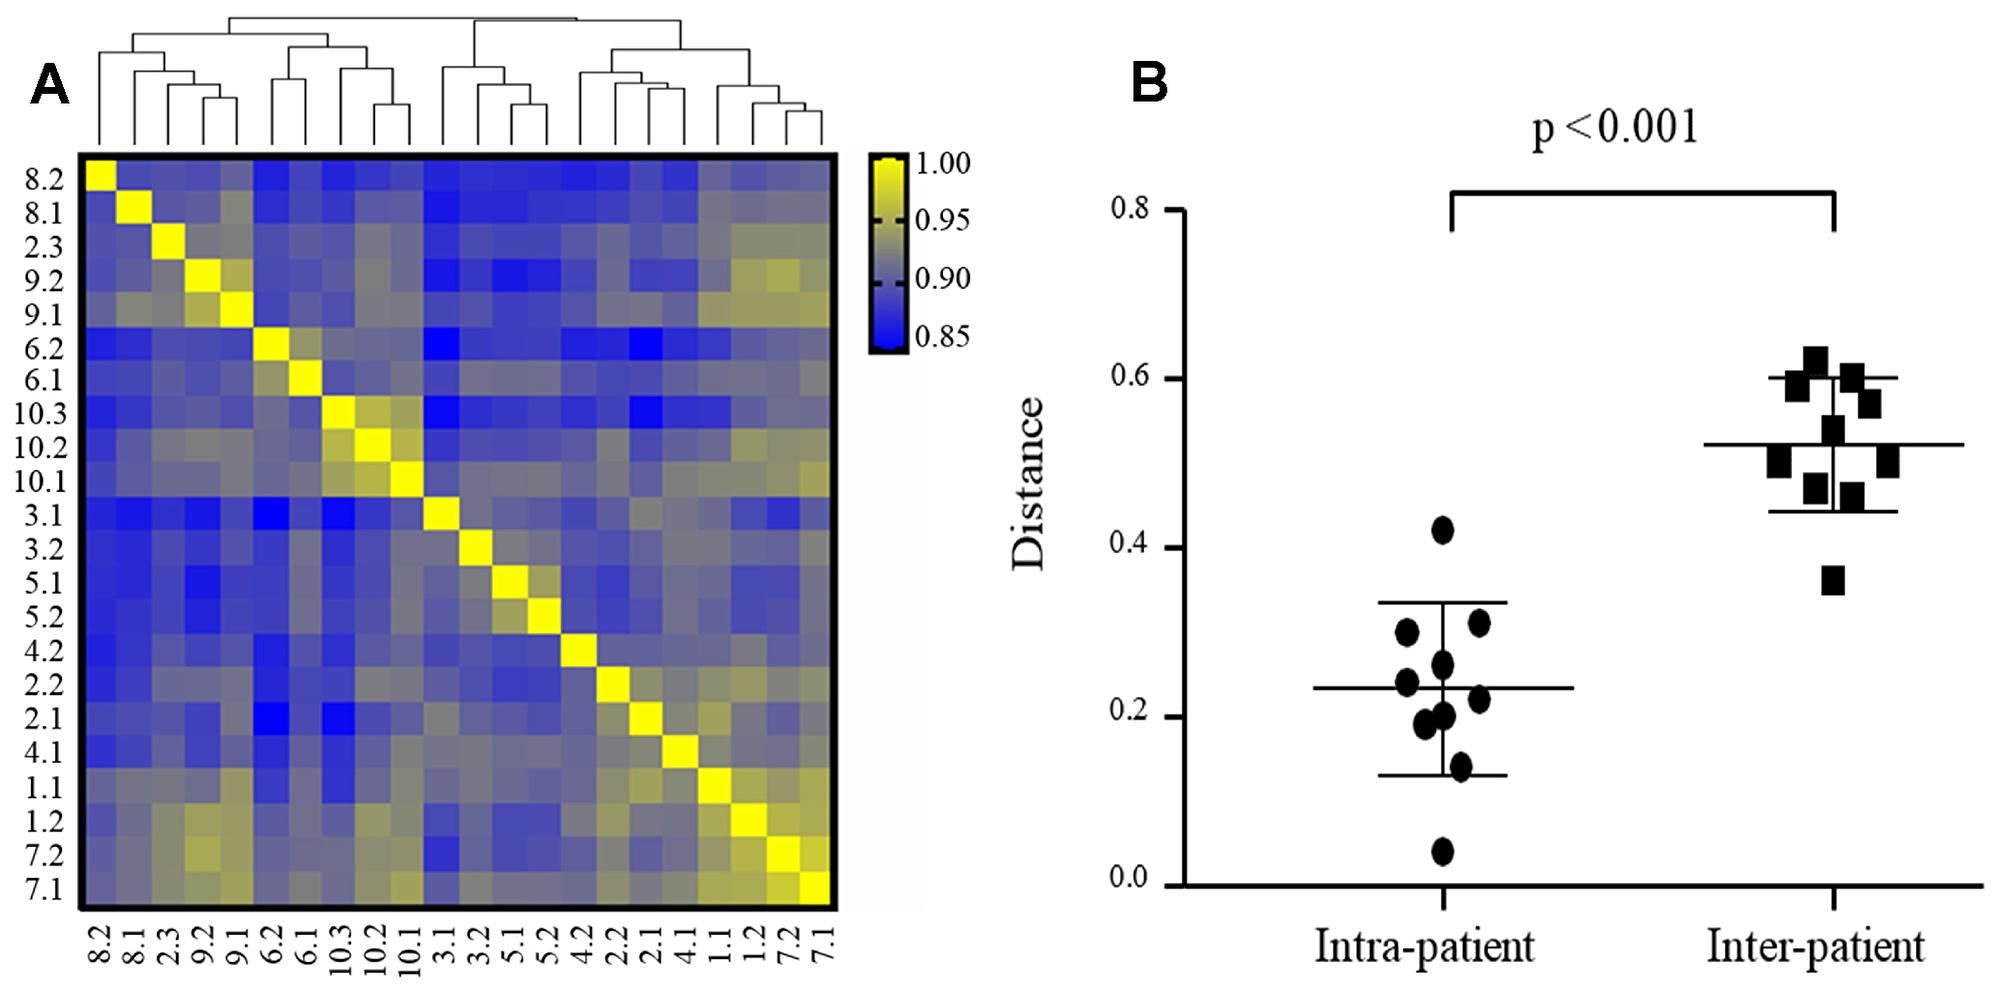 Intra- and inter-patient heterogeneity of mRNA expression in TNBC (N = 22 specimens).